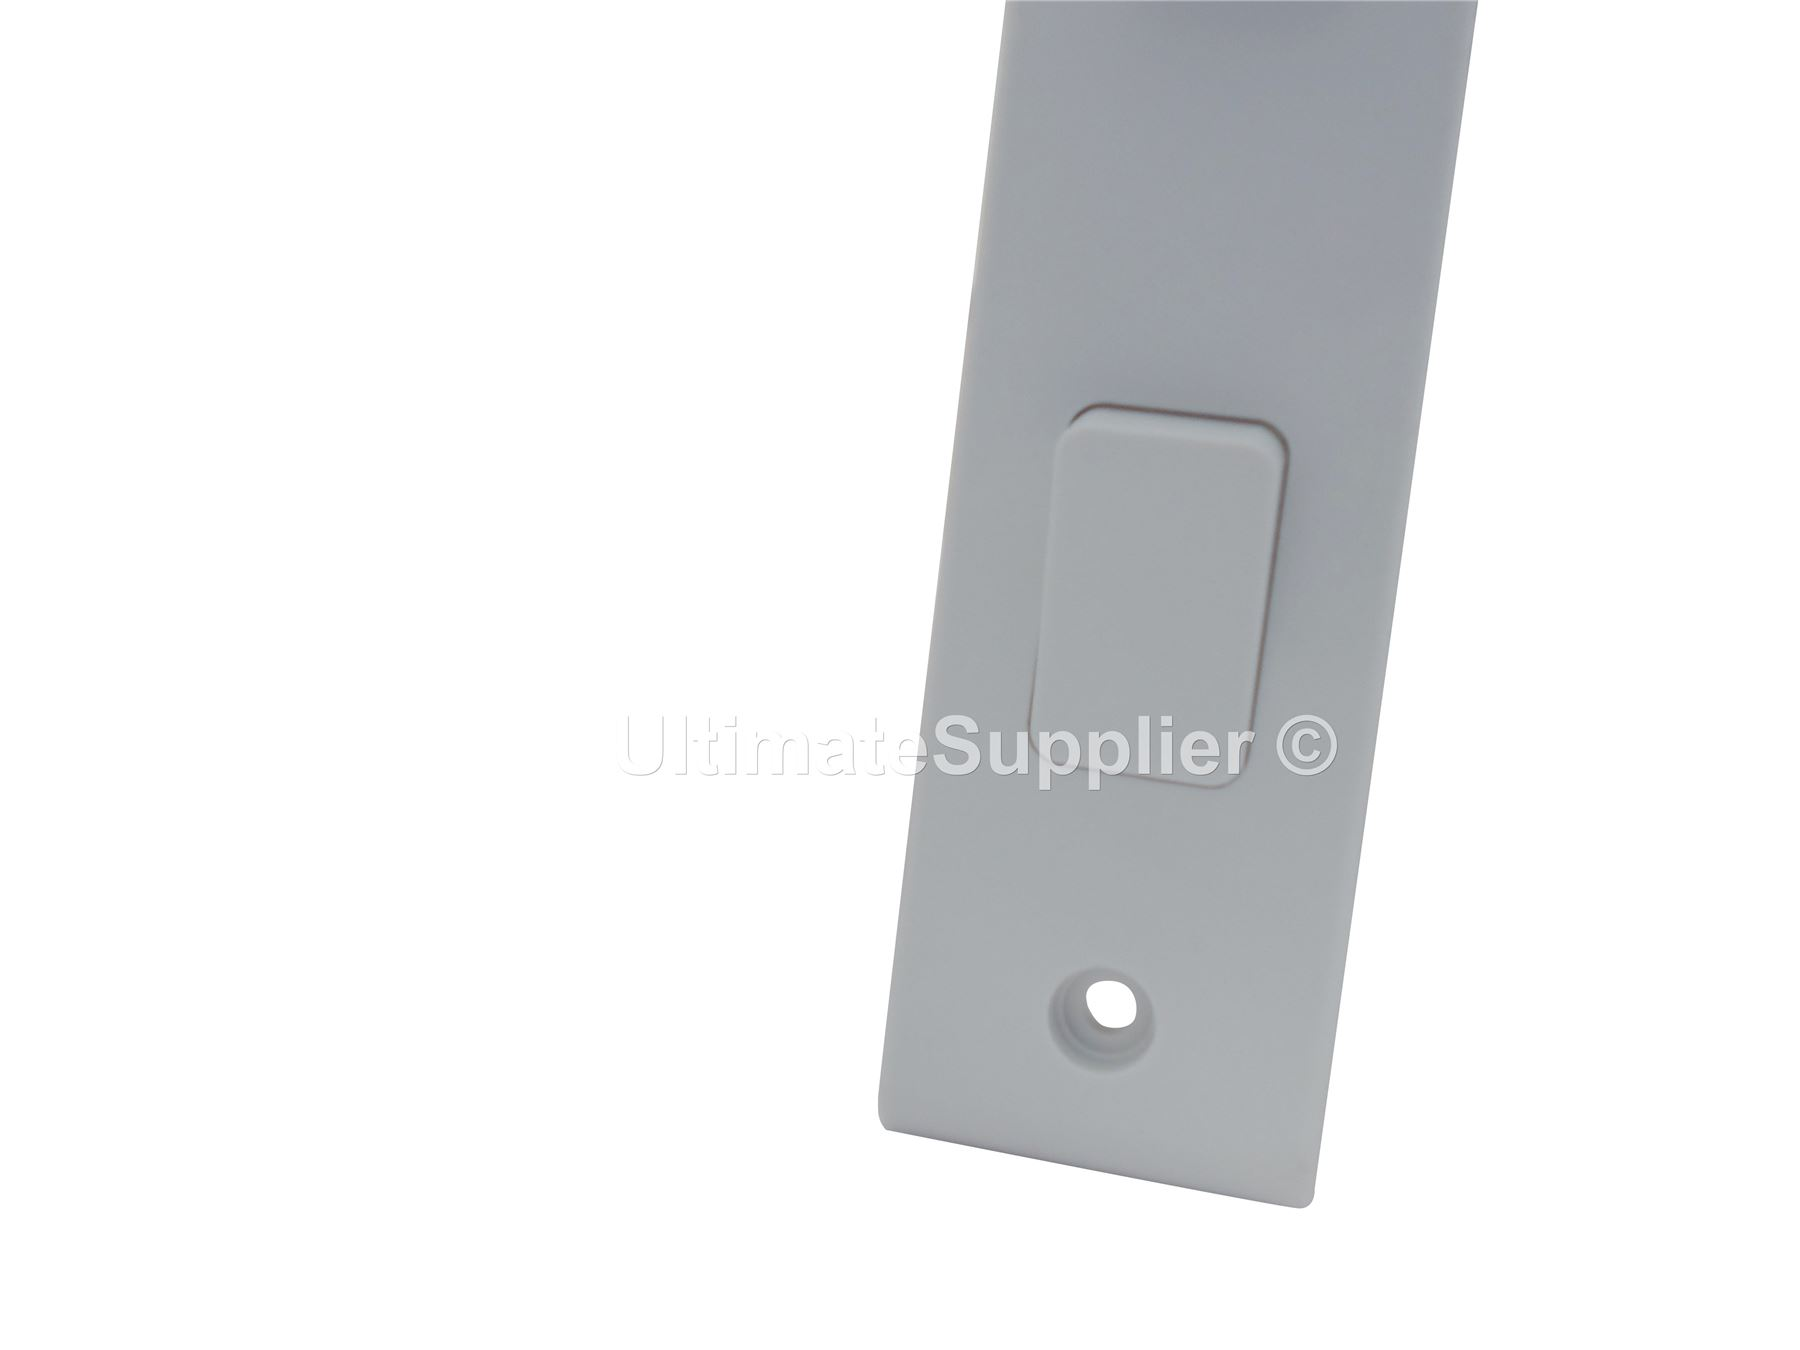 2 gang architrave switch 2 way double light 10a white slim